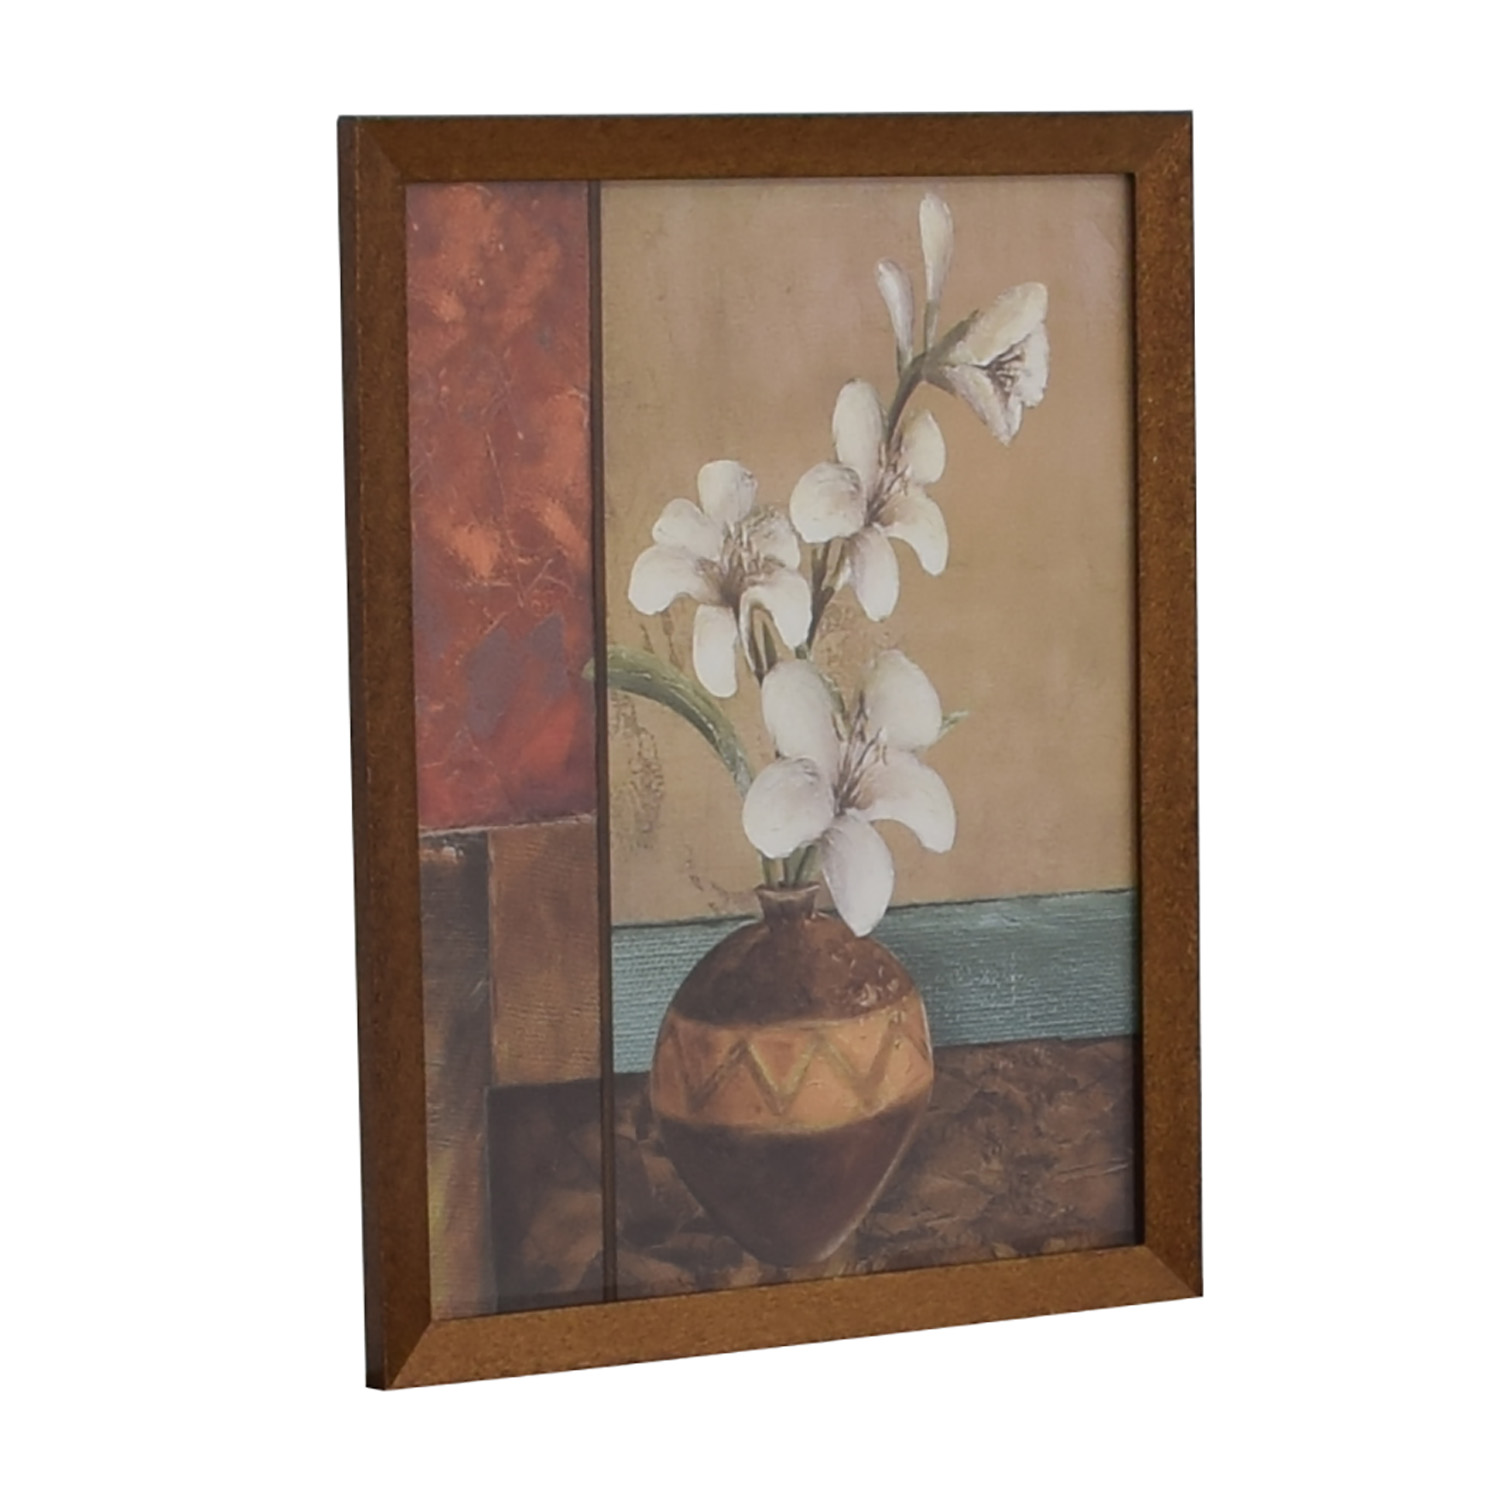 Floral Framed Wall Art used